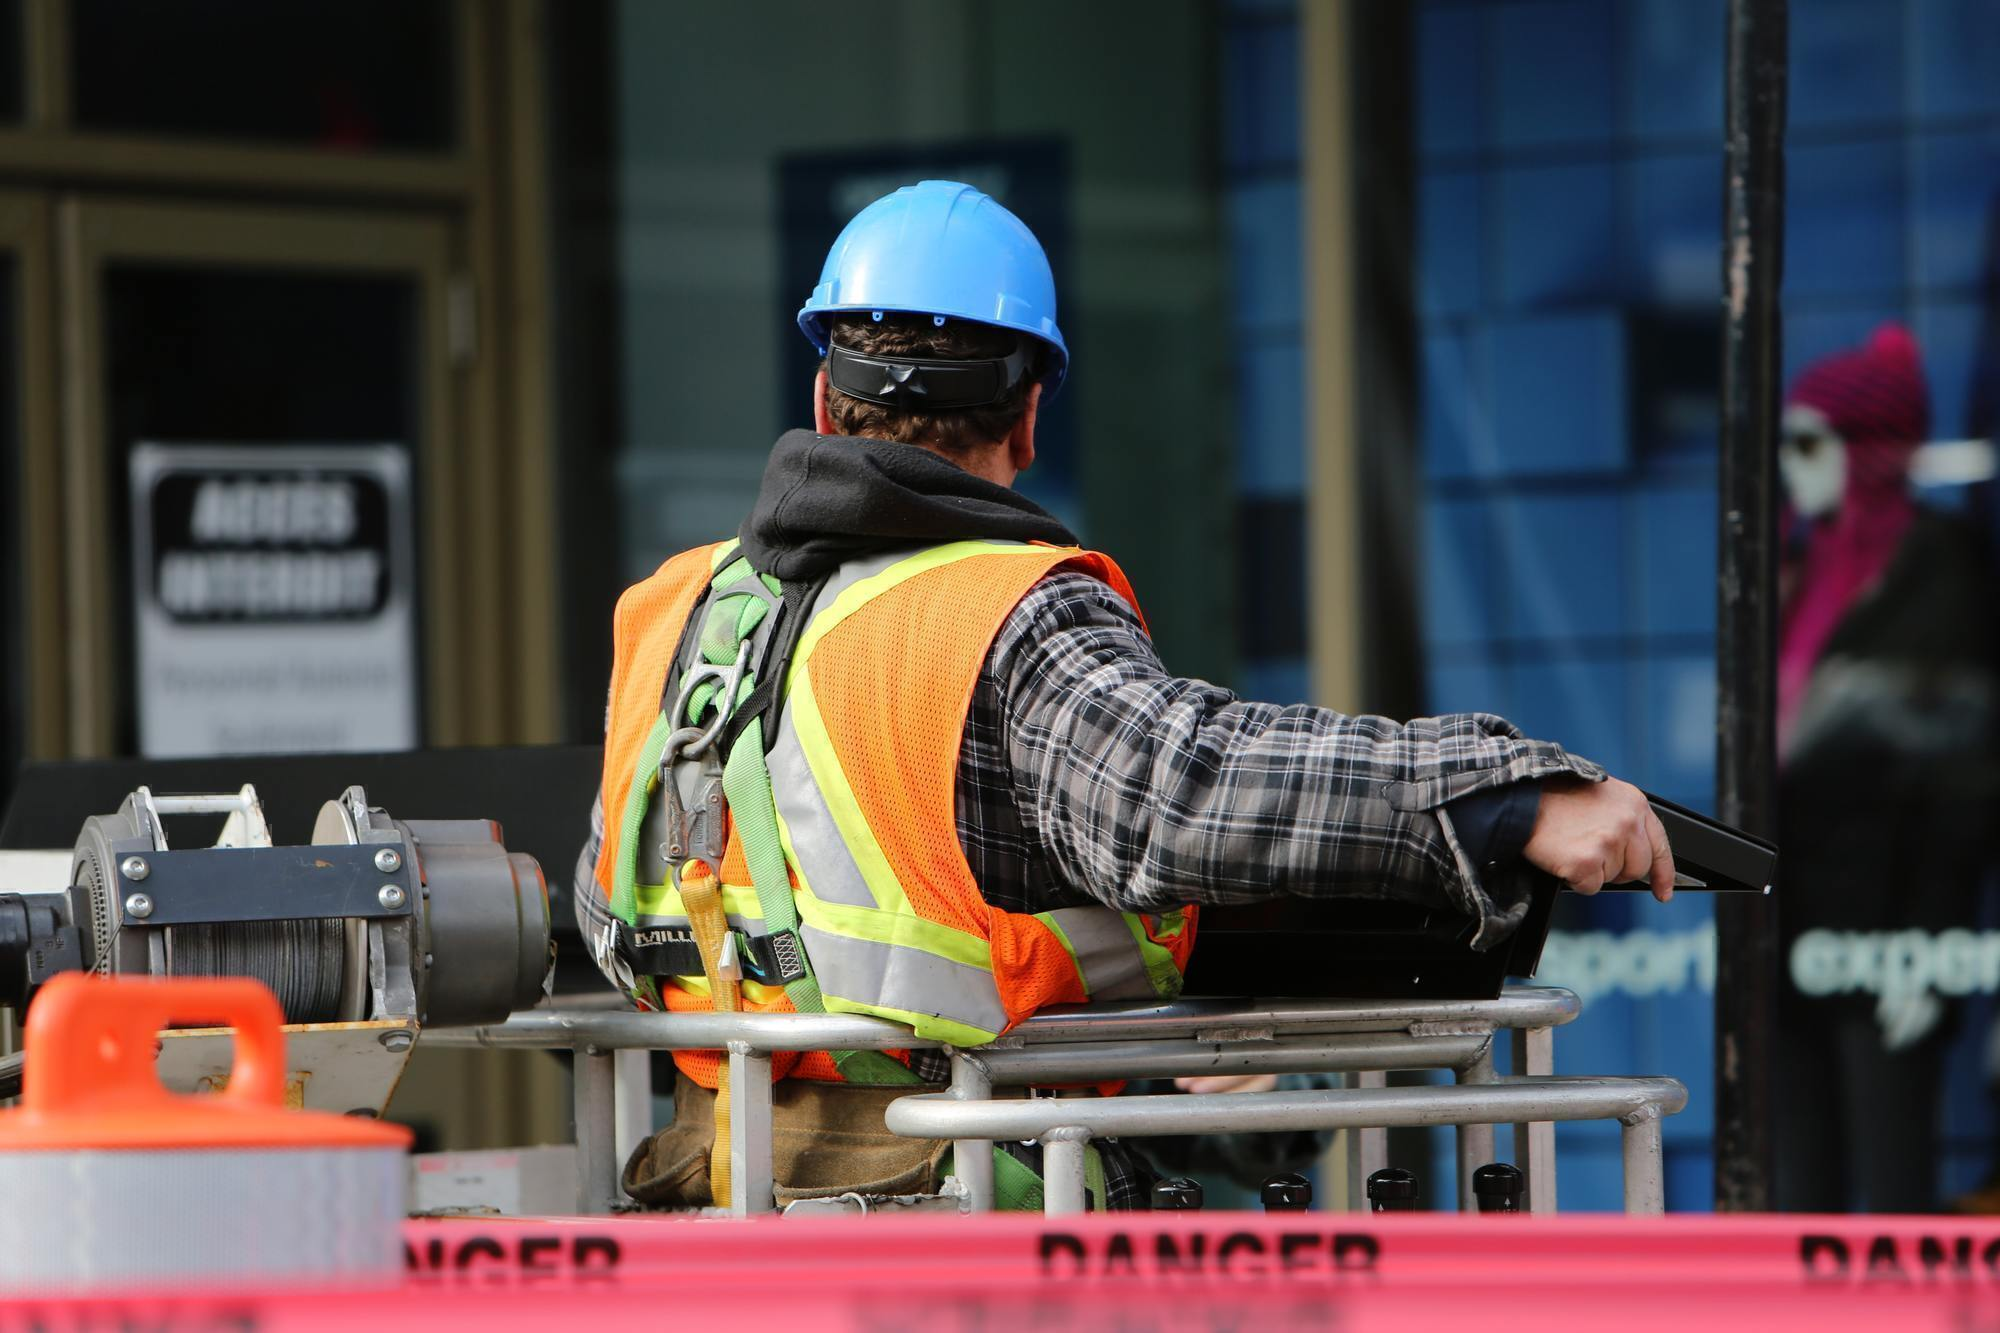 General Contractor Jobs: High Paying and Growing